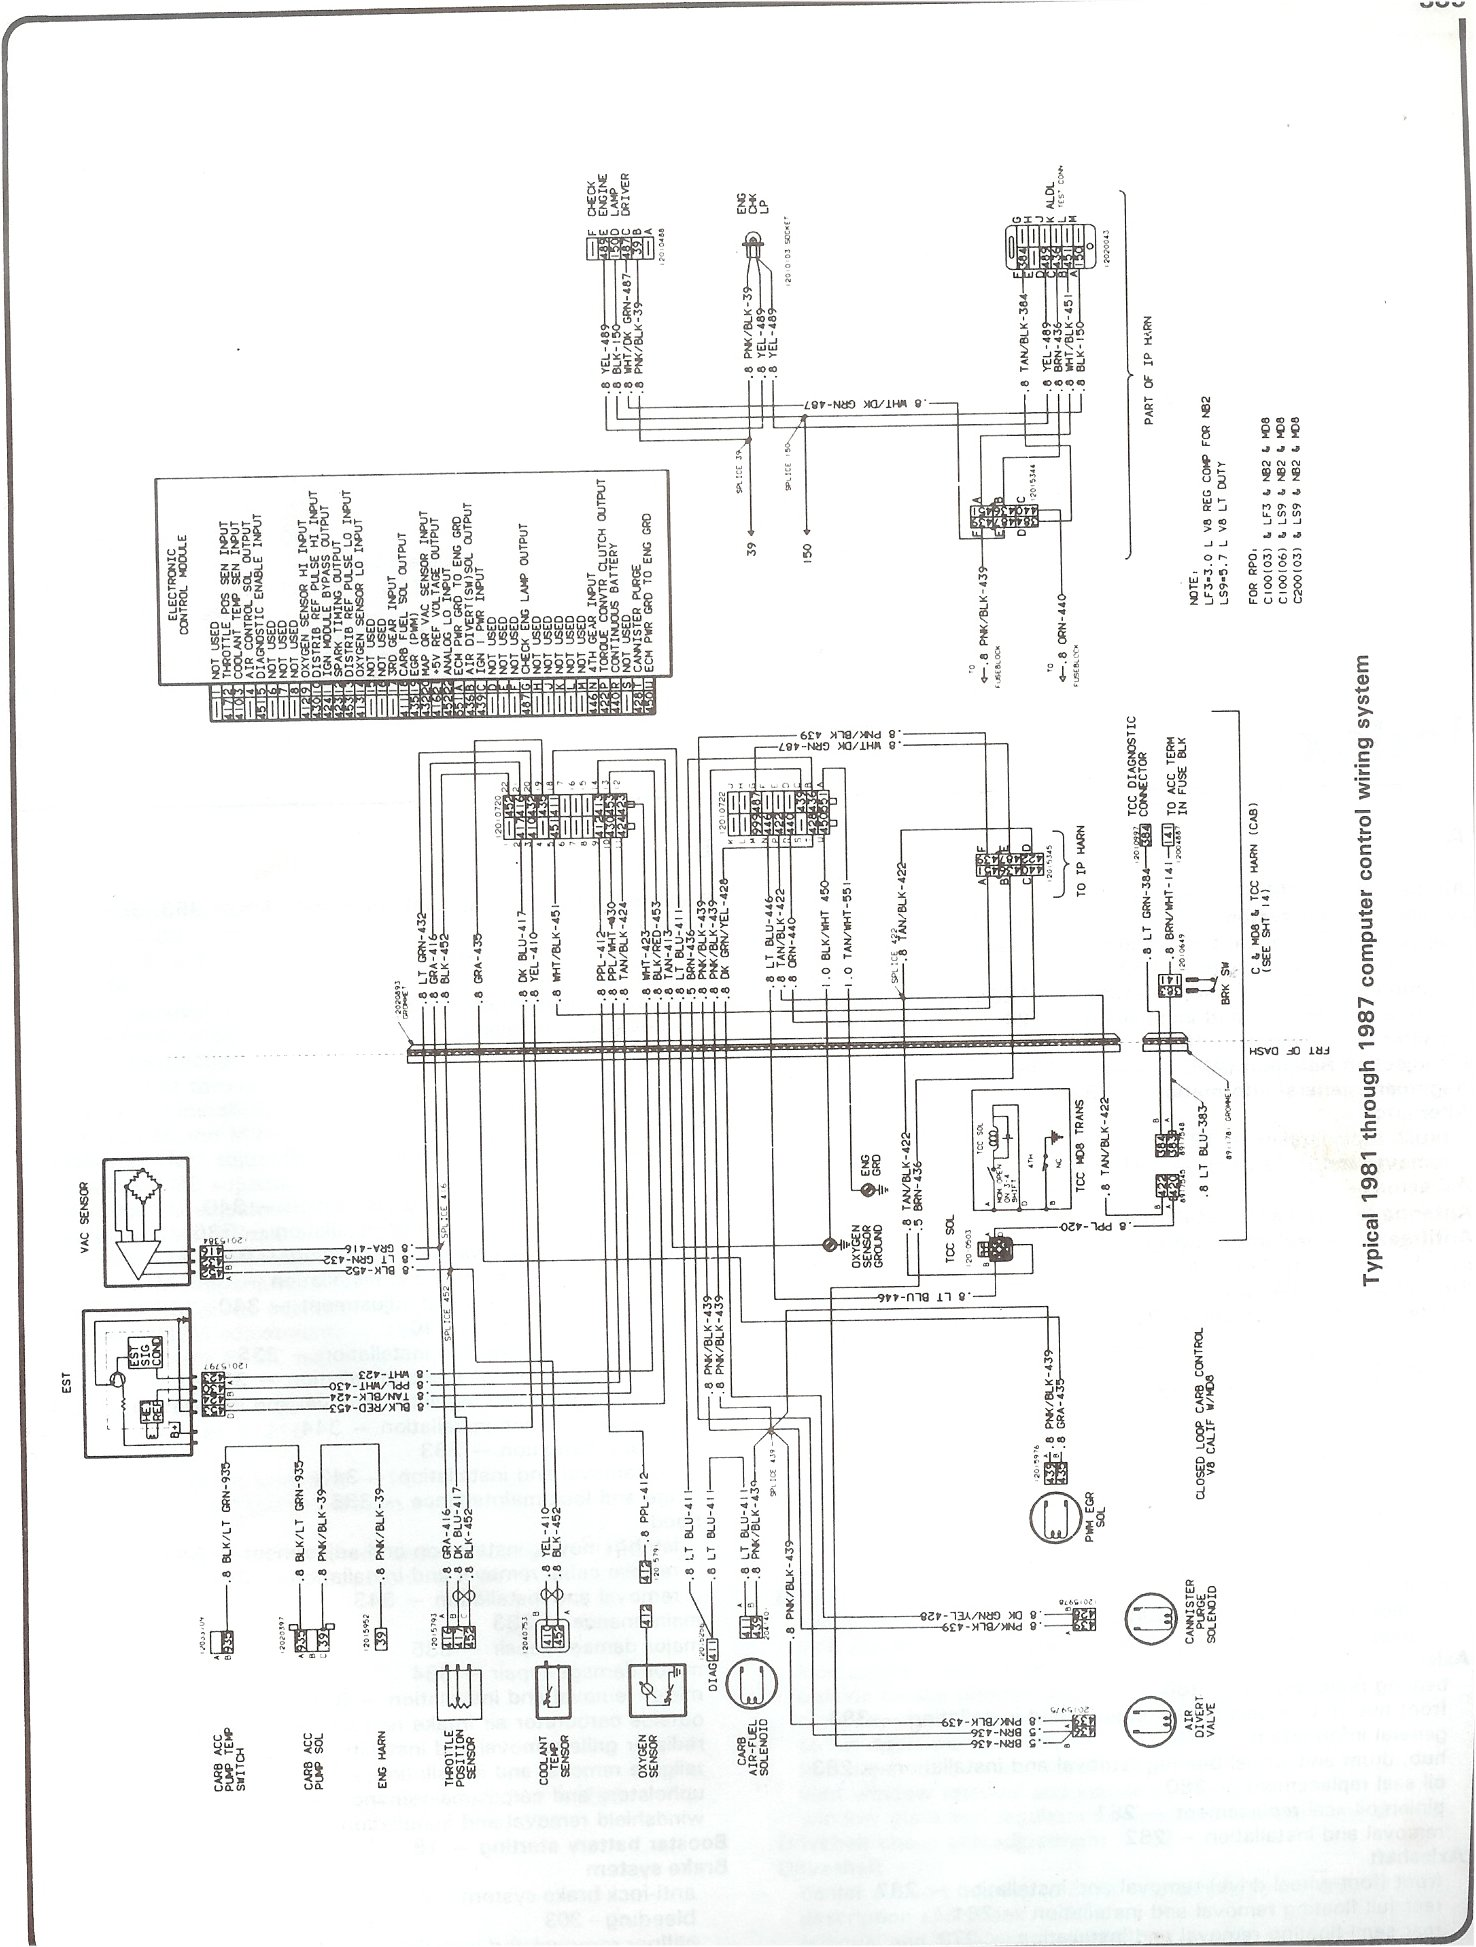 complete 73 87 wiring diagrams rh forum 73 87chevytrucks com GM Factory Wiring Diagram Chevy Radio Wiring Diagram